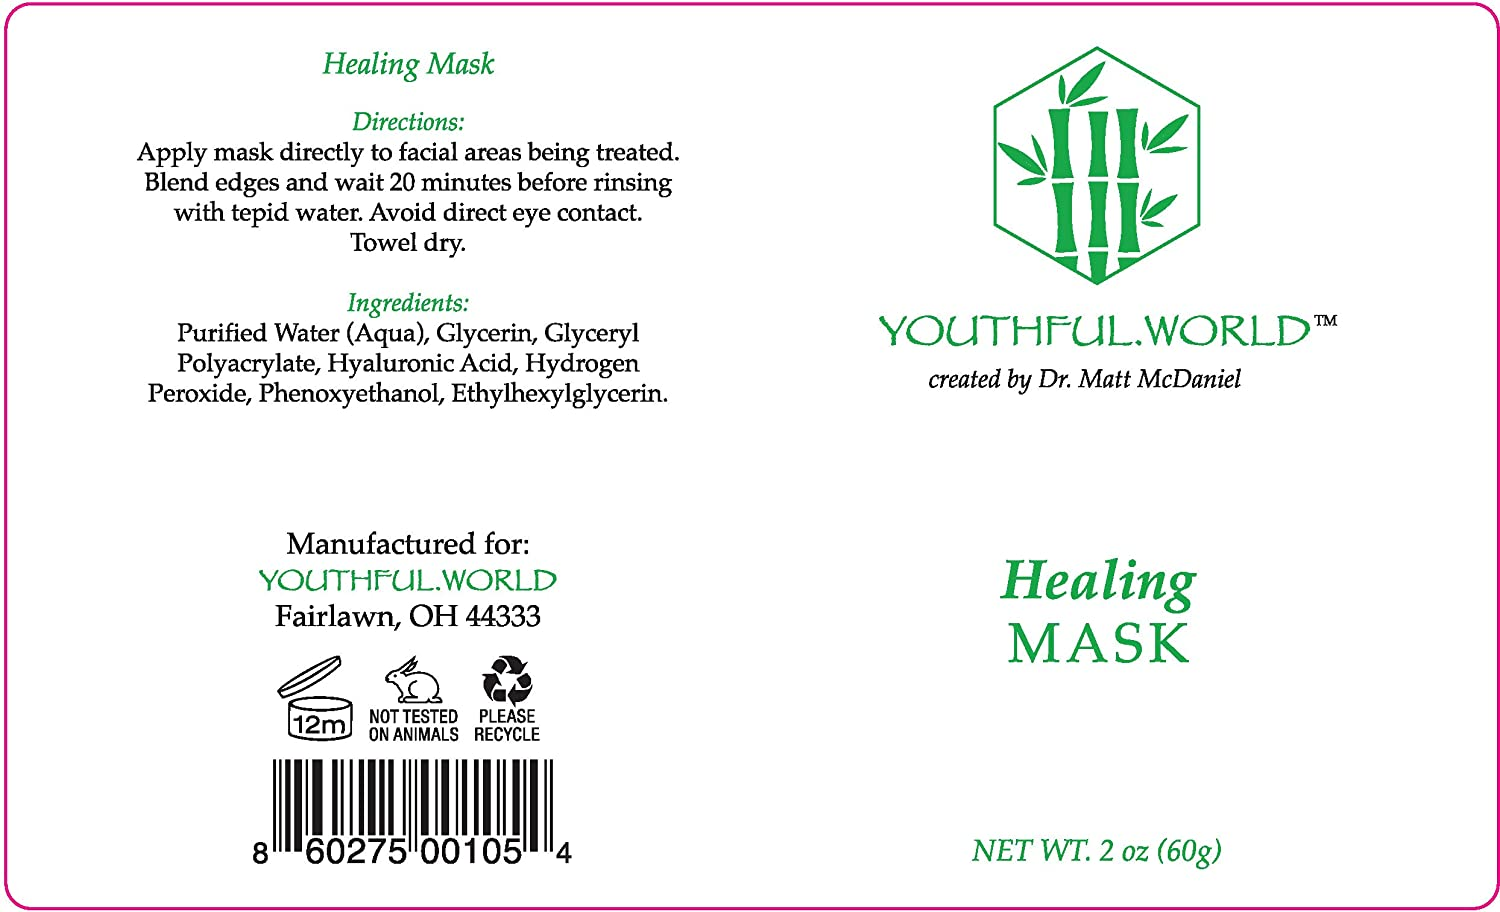 YOUTHFUL.WORLD Corrective Healing Mask, Healing and Prevention for a Healthy Complexion